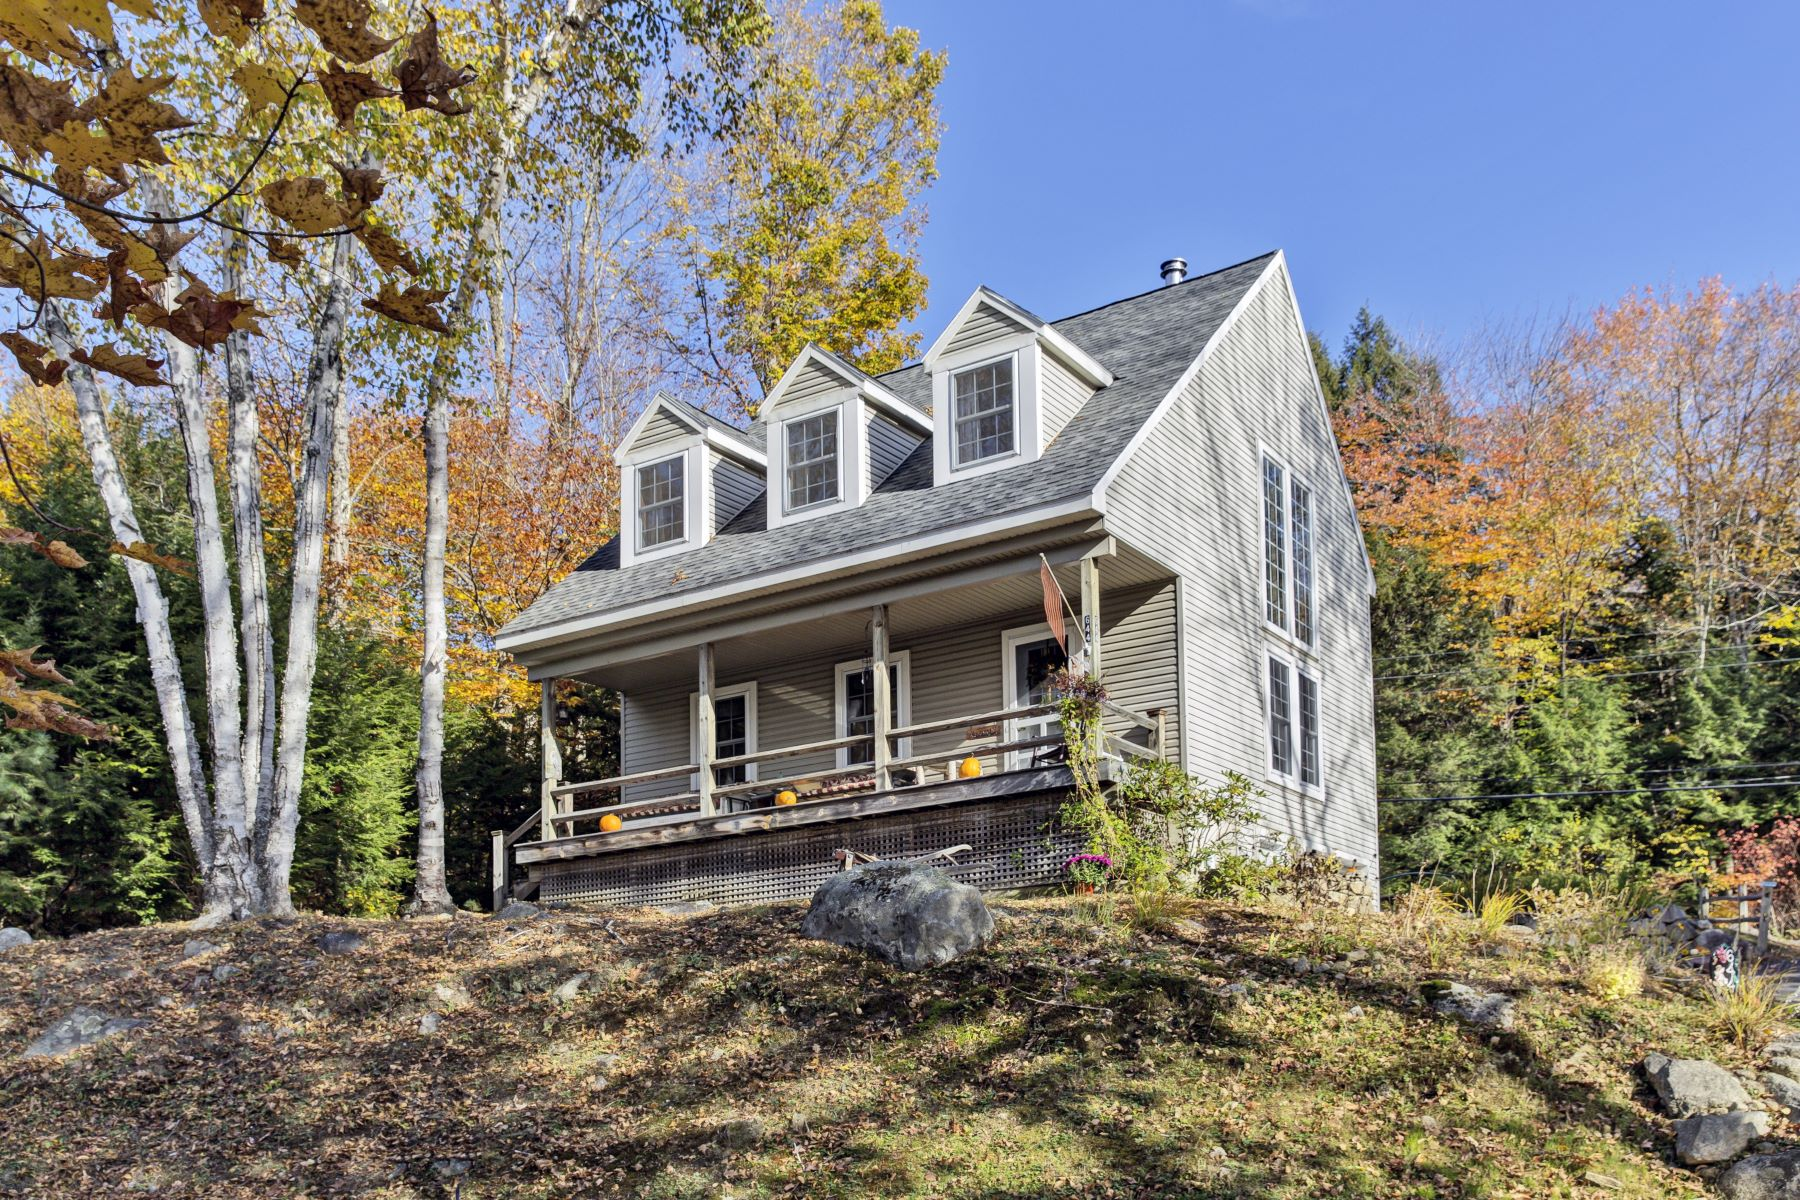 Single Family Home for Sale at 644 Goose Pond, Canaan 644 Goose Pond Road Canaan, New Hampshire 03741 United States